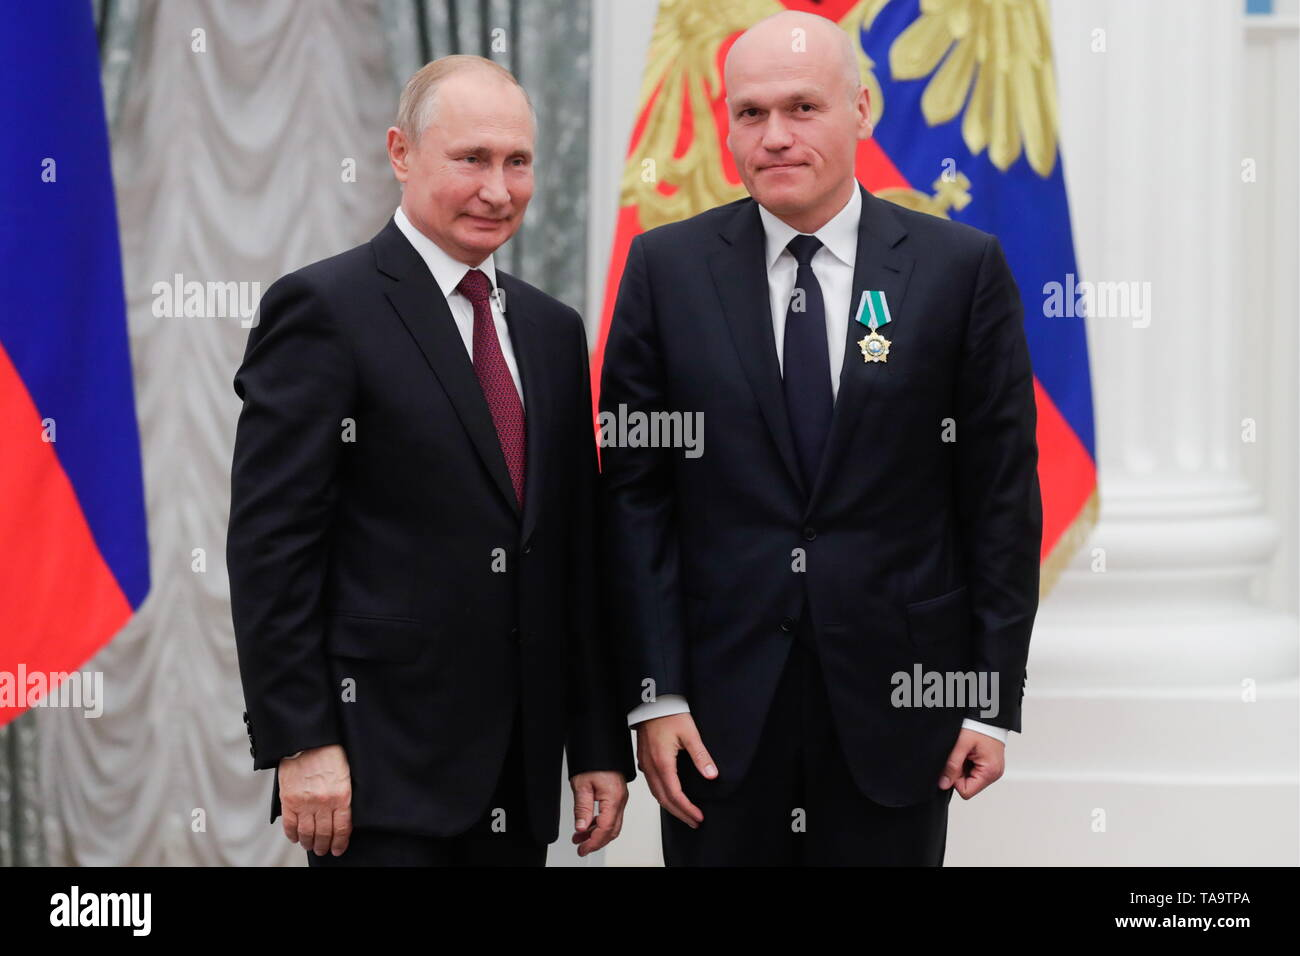 Moscow, Russia. 23rd May, 2019. MOSCOW, RUSSIA - MAY 23, 2019: Russia's President Vladimir Putin (L) awards an Order of Friendship to Russian Chess Federation President Andrei Filatov during a ceremony to present state decorations at the Moscow Kremlin. Mikhail Metzel/TASS Credit: ITAR-TASS News Agency/Alamy Live News - Stock Image